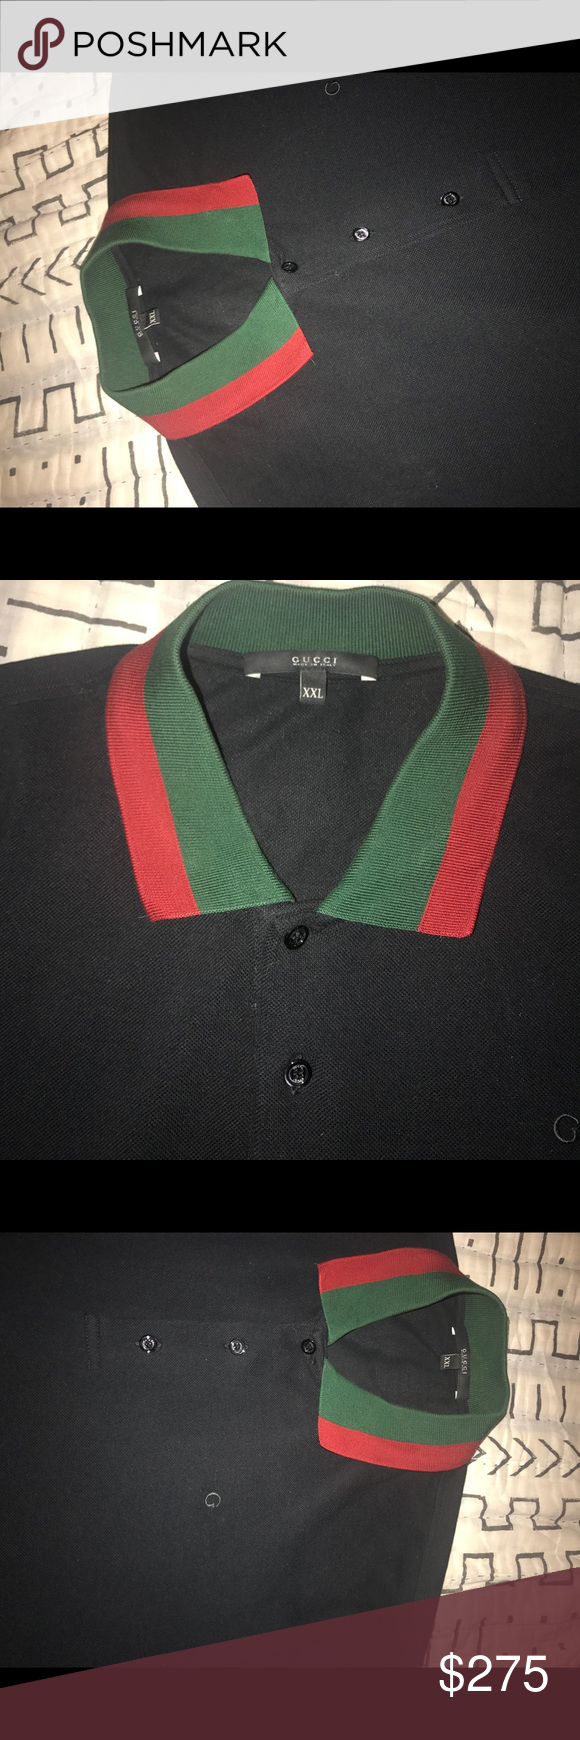 5b95fe65 Gucci Polo red/green collar Black Gucci polo. Small Embroidered G on upper  right area, classic red/green collar. Size EU XXL (Us L) Gucci Shirts Polos